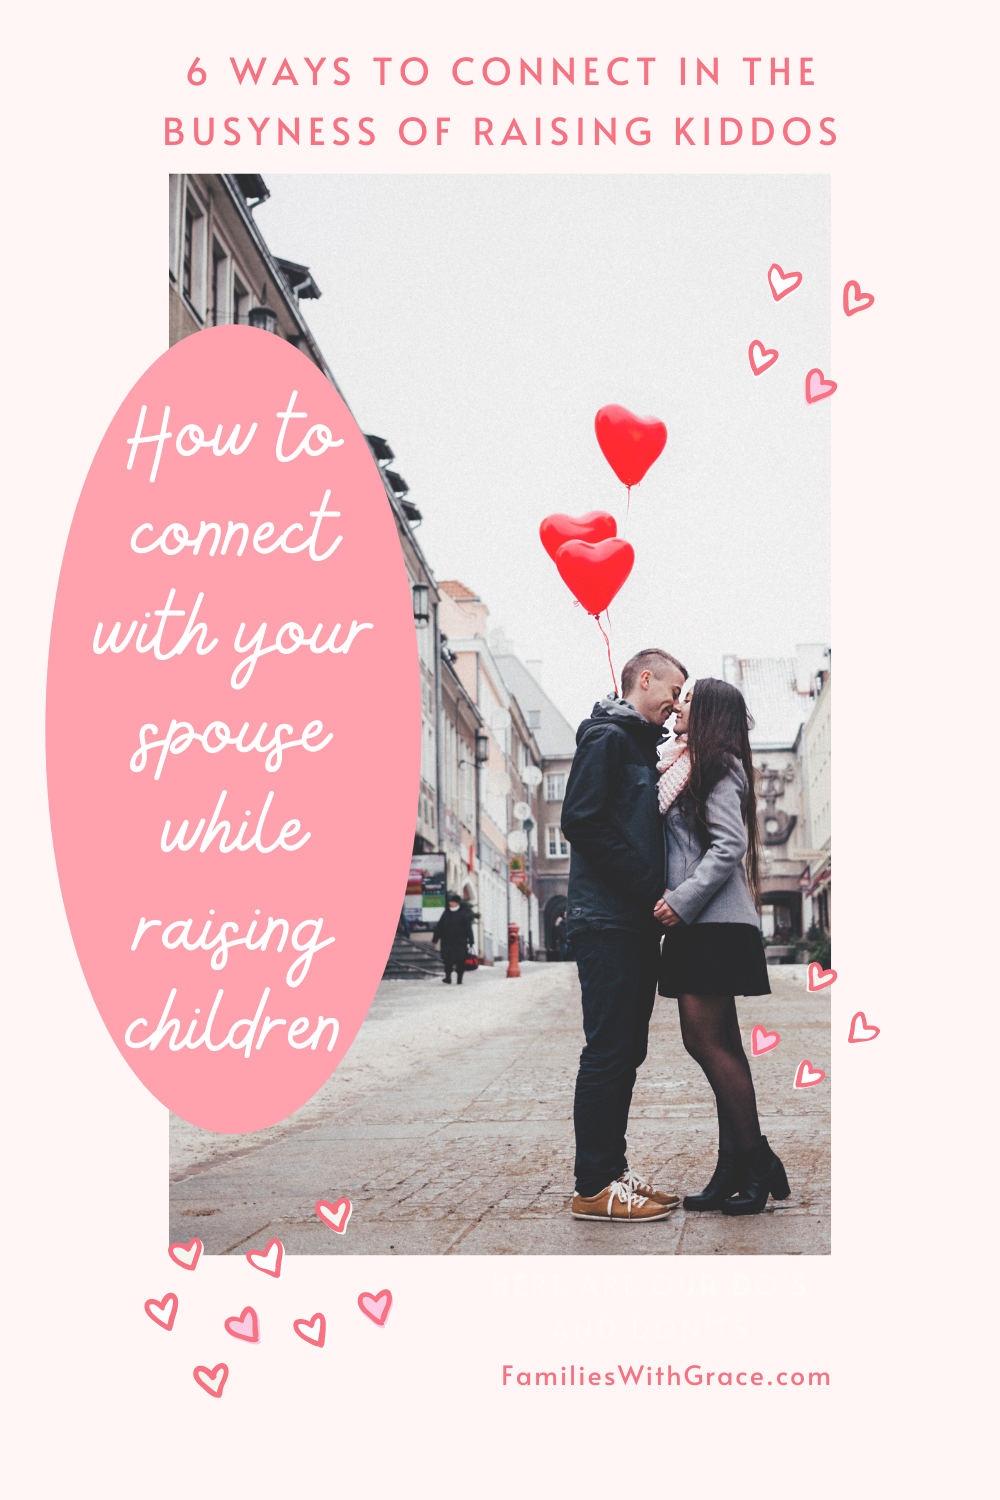 How to connect with your spouse while raising children